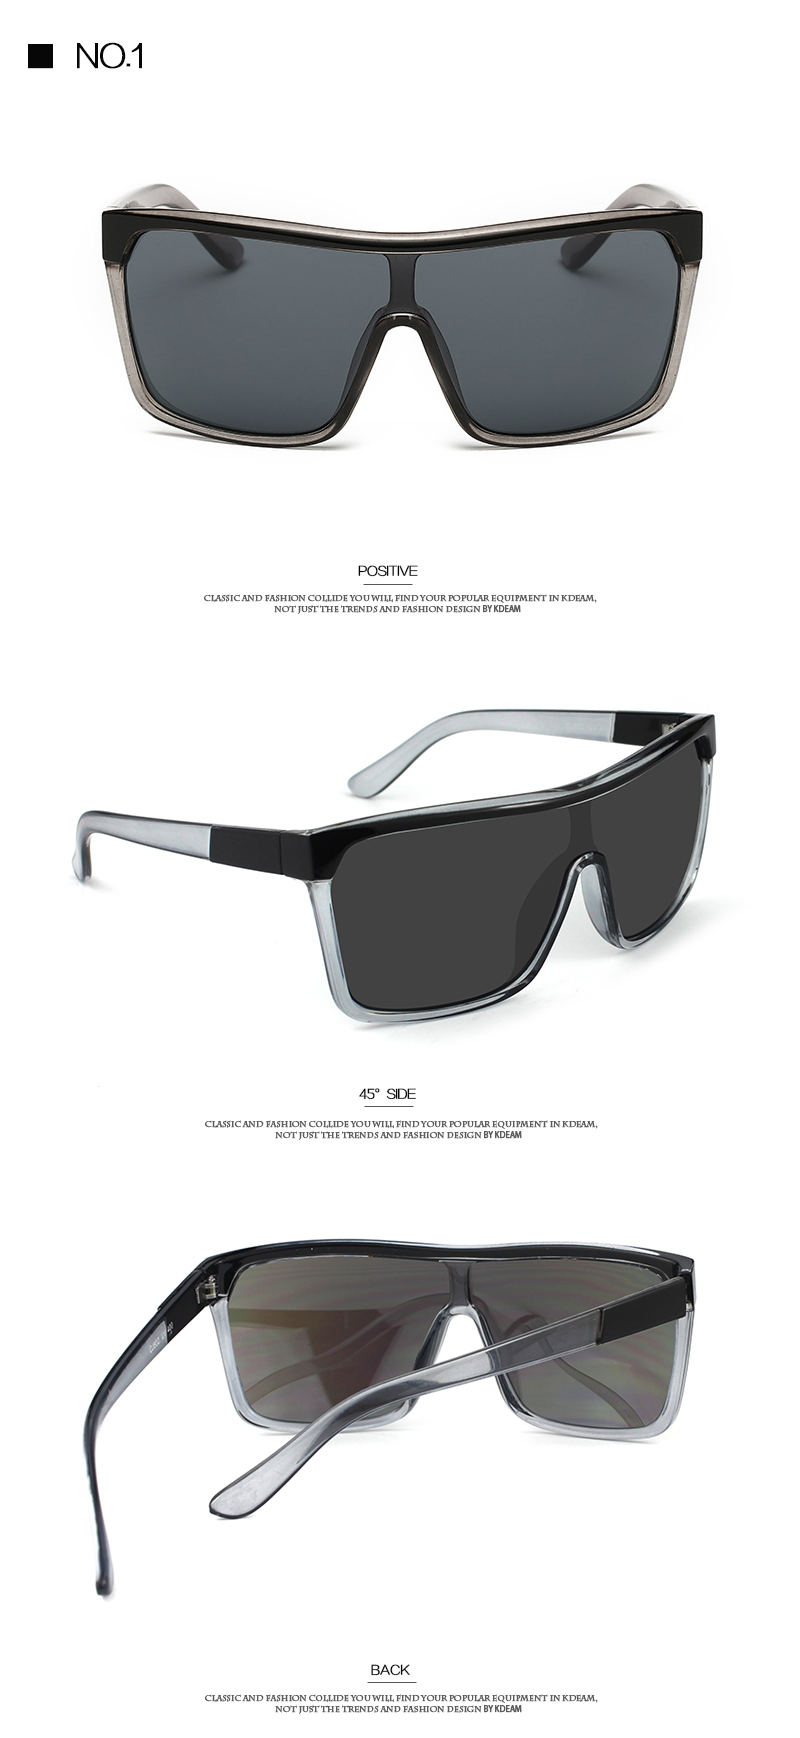 a92c50cff5b KDEAM Mens Goggle Flynn Sport Sunglasses Flat top Frame Women Sun Glasses  Windproof Glasses UV400 4 colors with Case KD802. 111 size all colors 1 ...